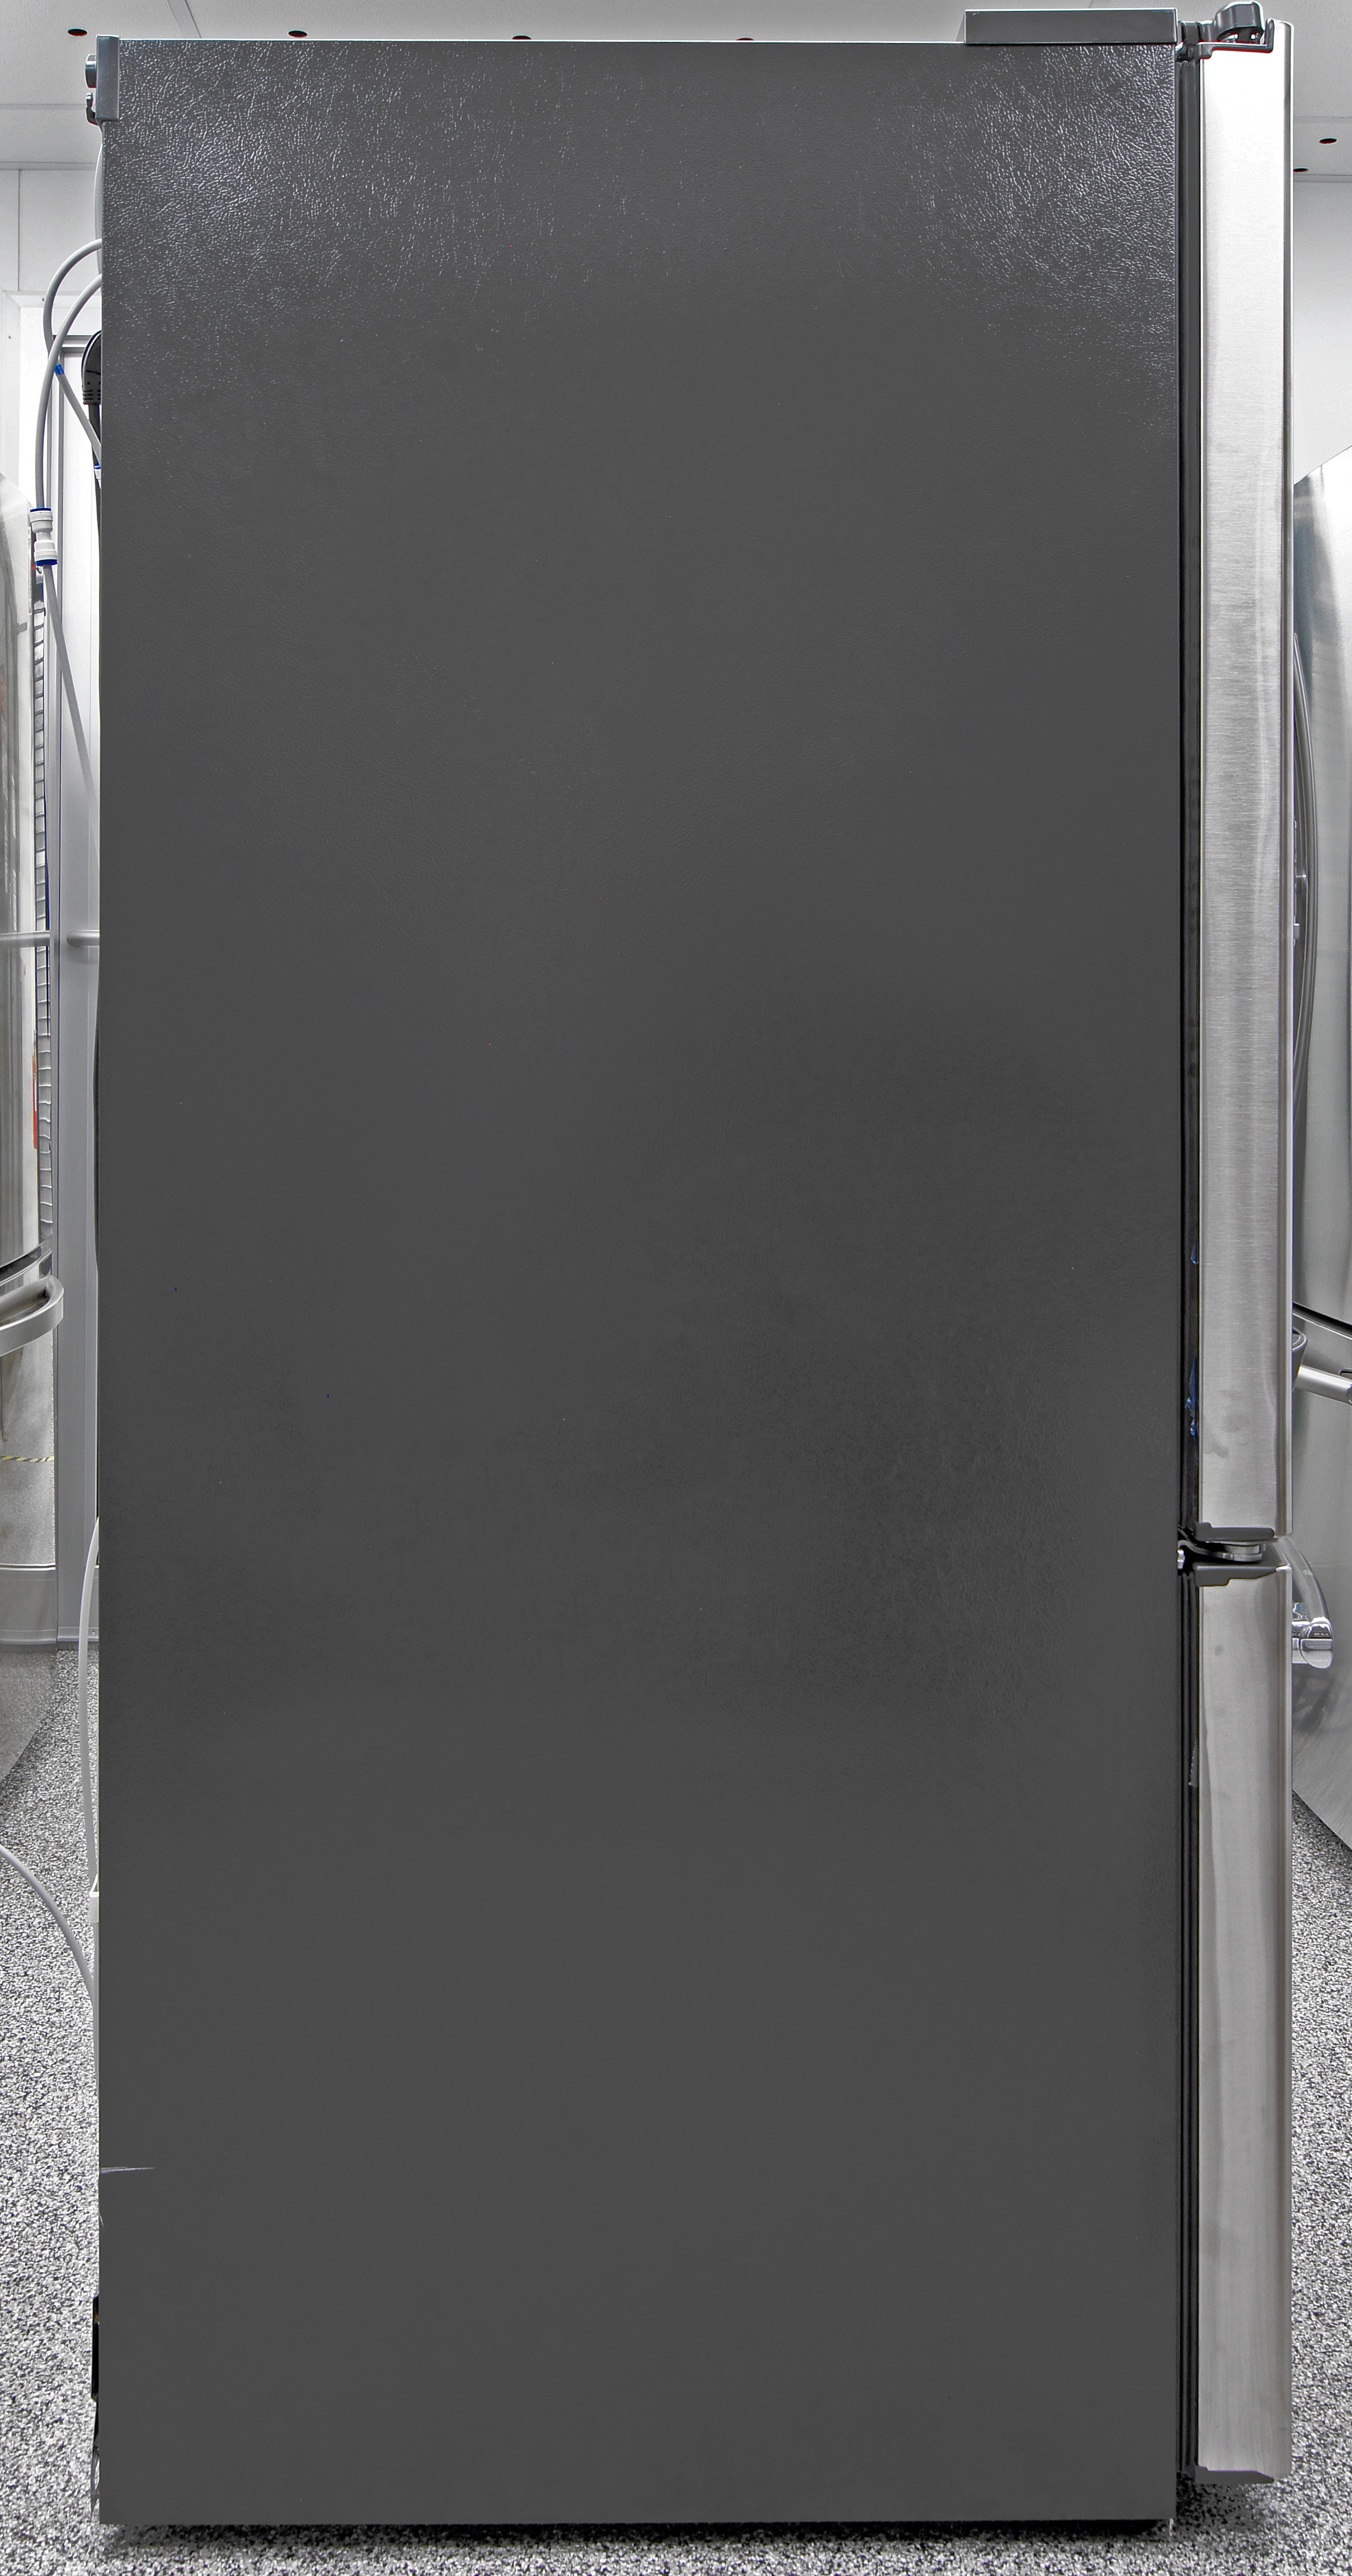 Ge profile pfe28rshss refrigerator review for High end french doors